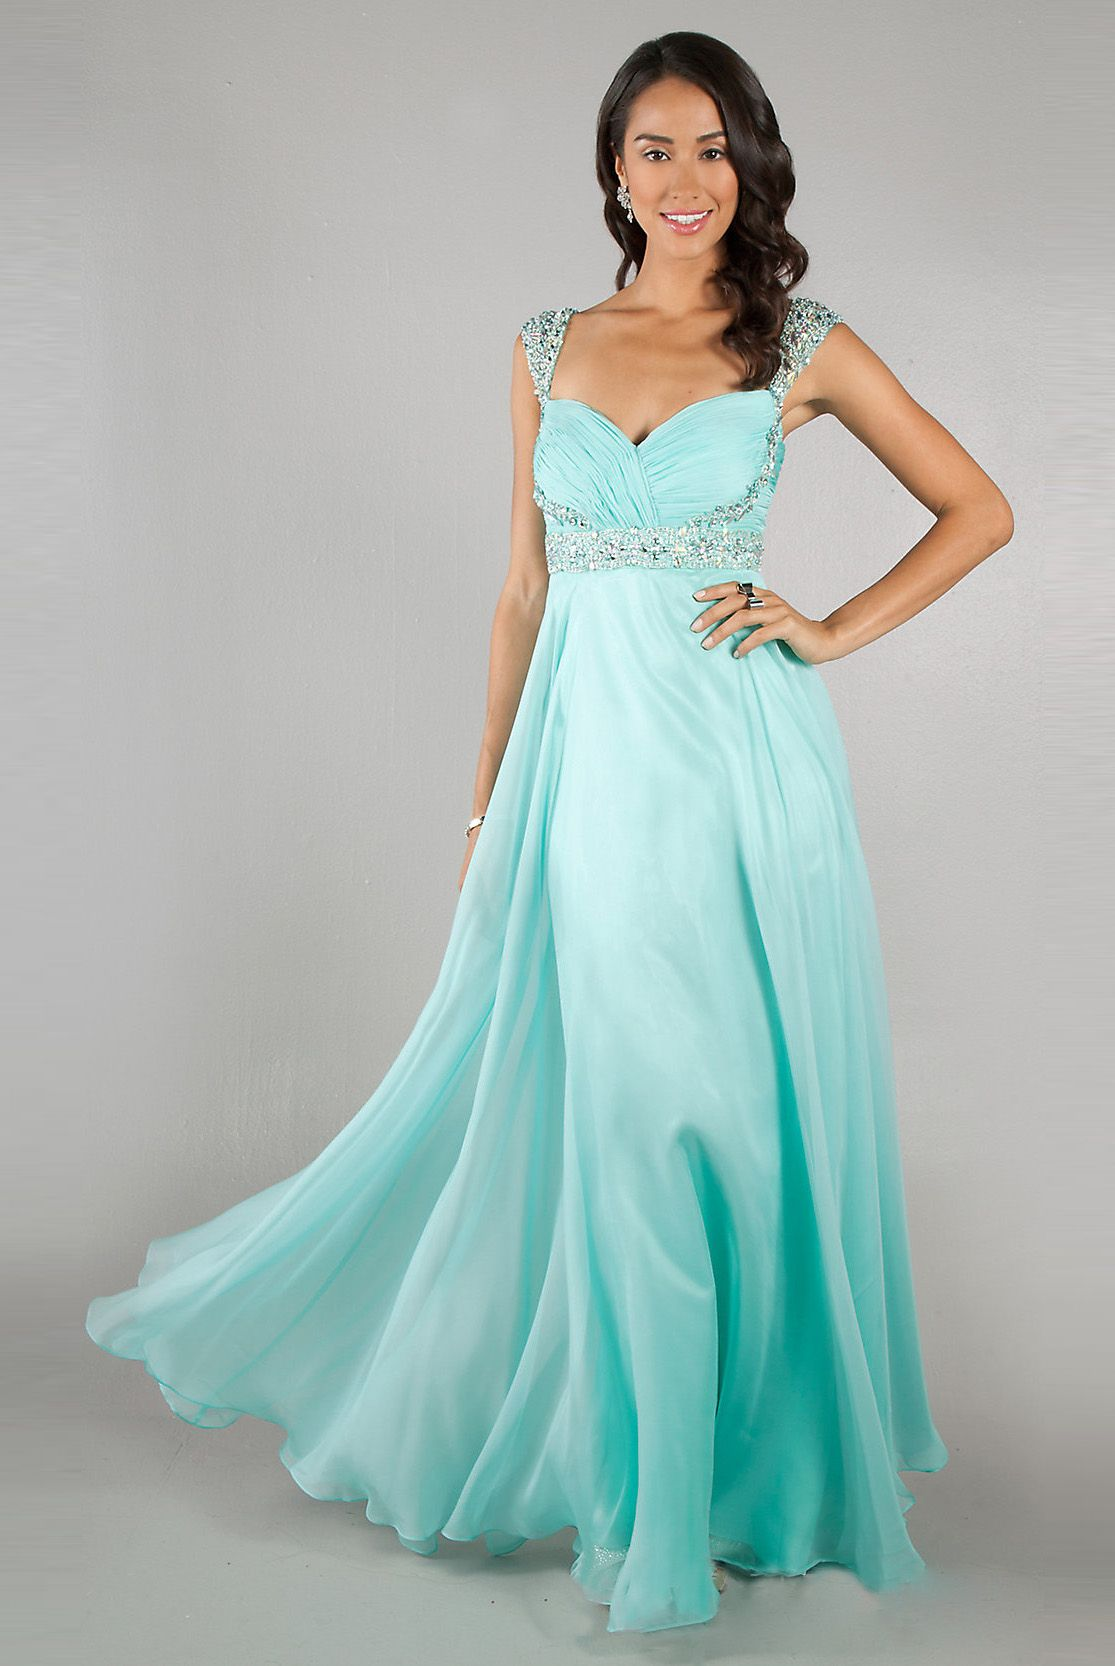 Aqua Long Sparkly Prom Dress <3 I\'m In Love Can\'t Wait Till Prom ...